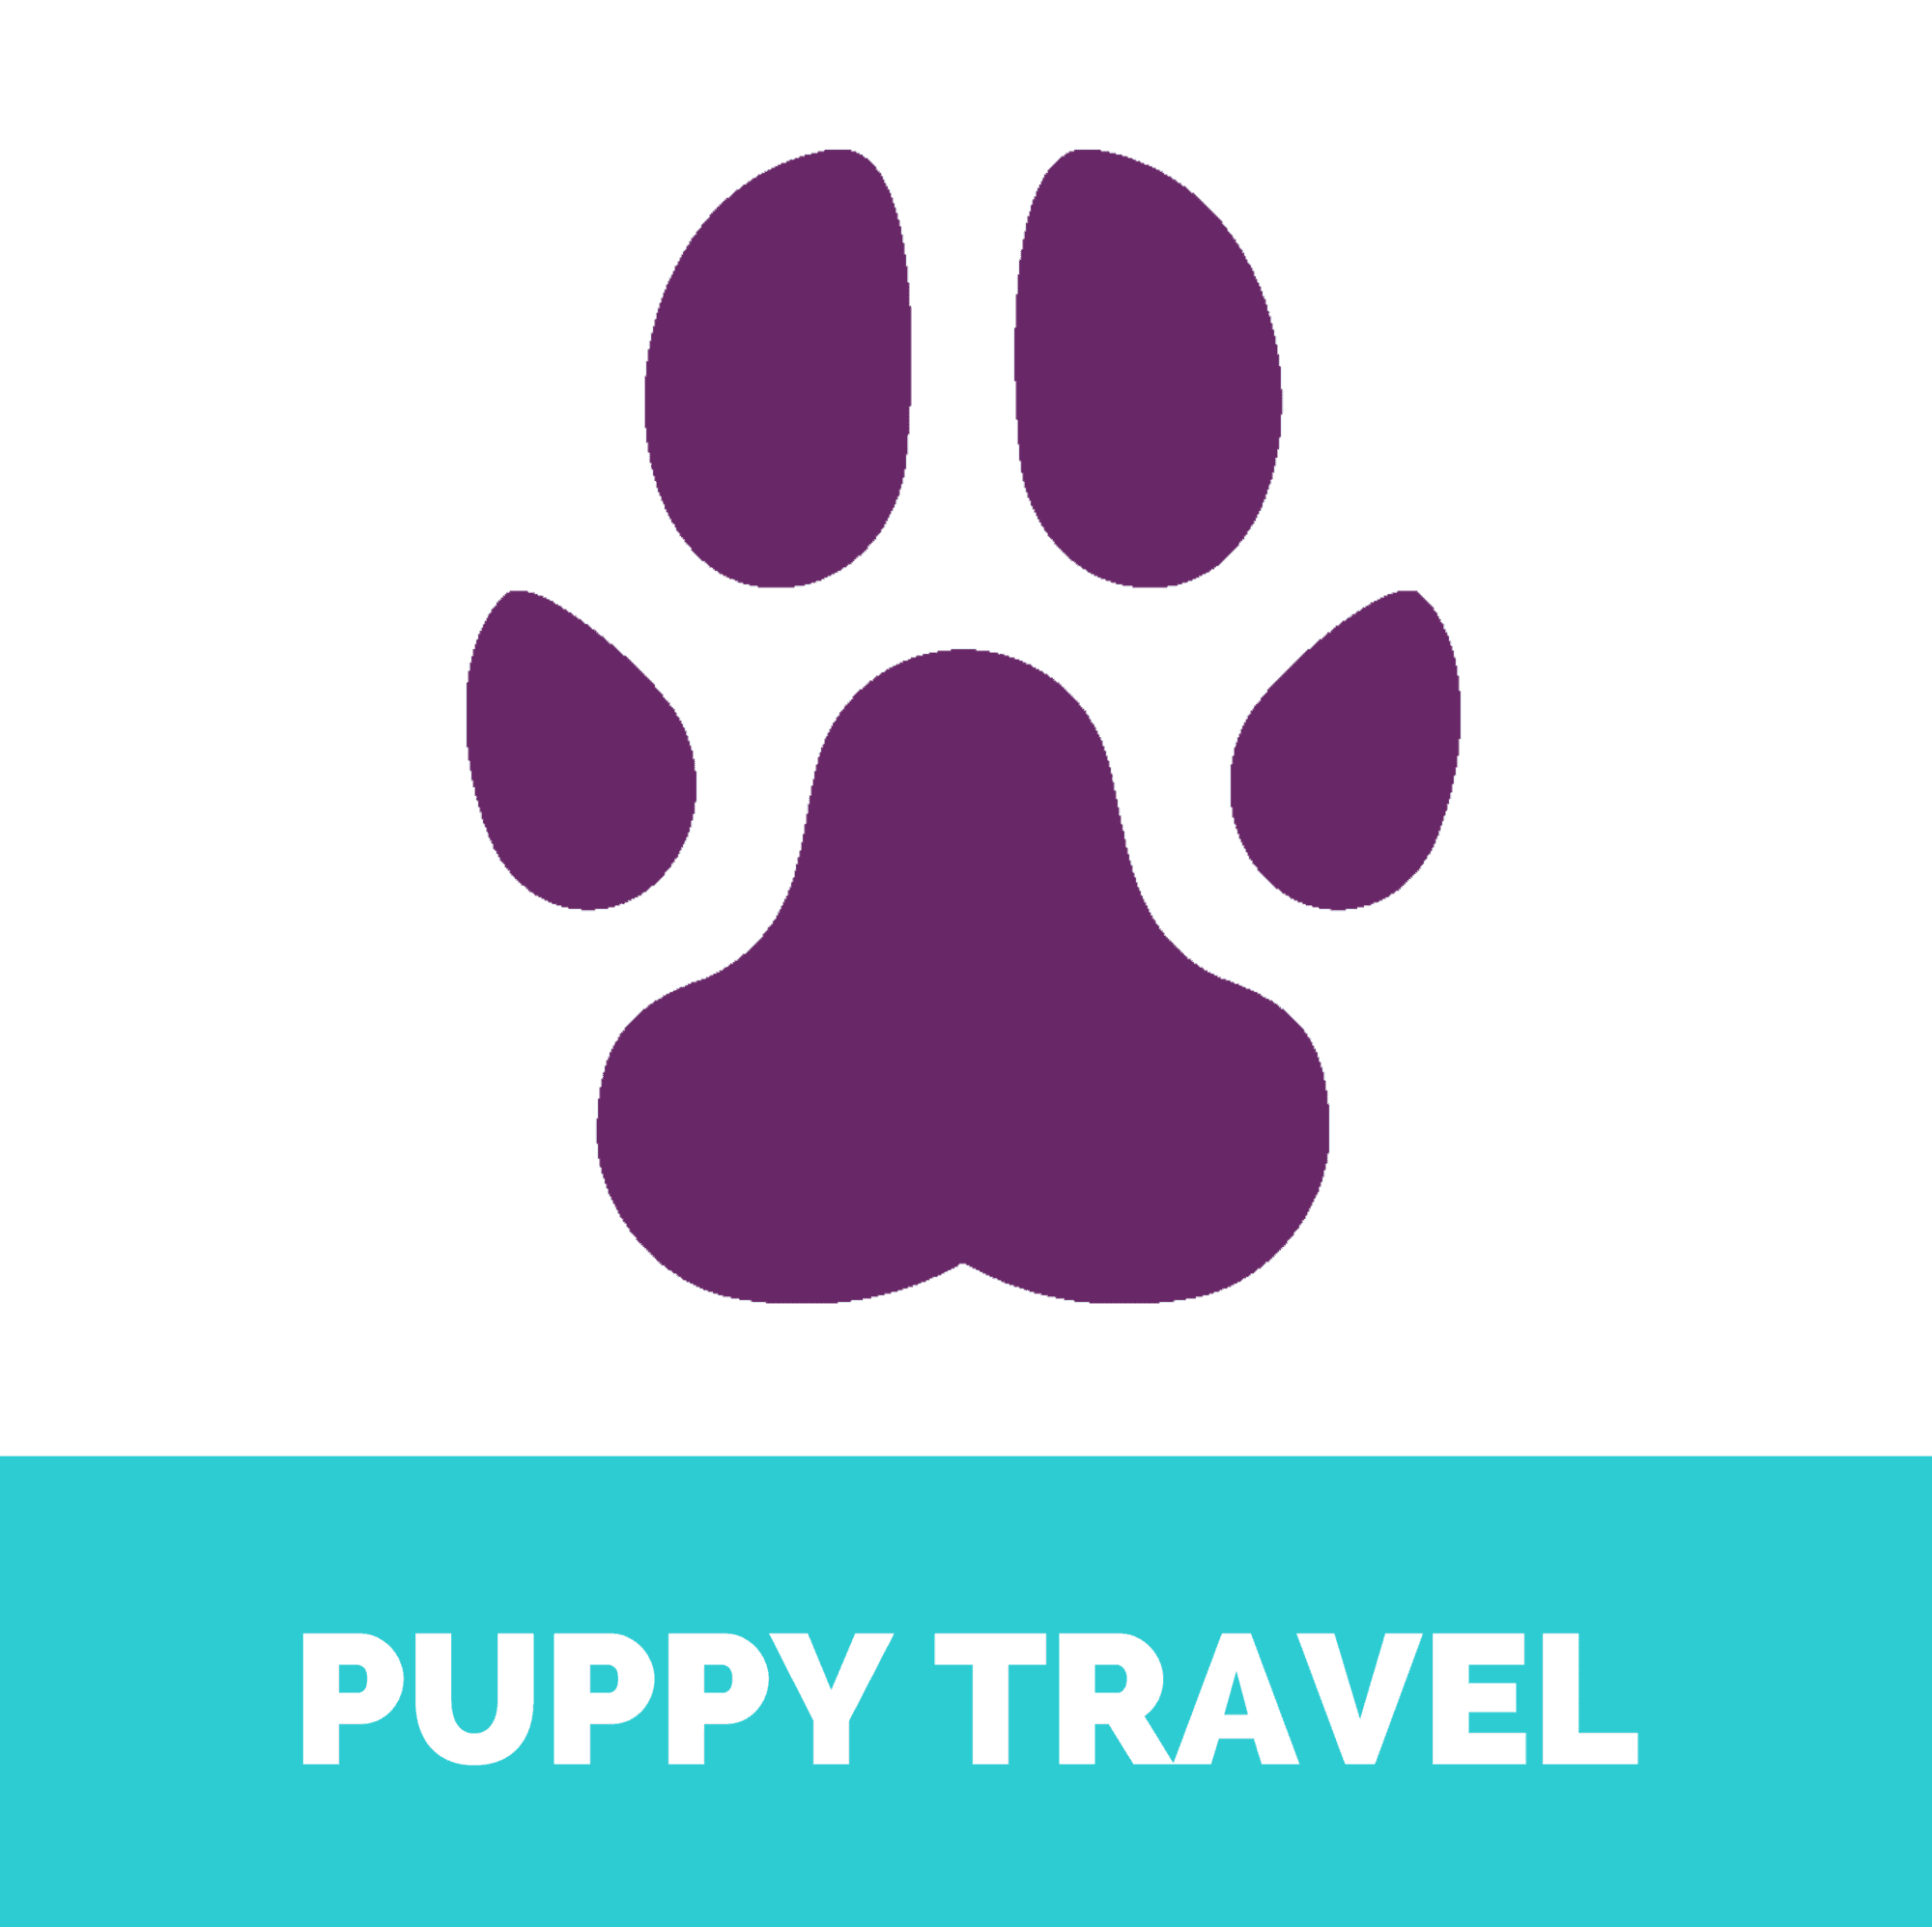 Puppy travel